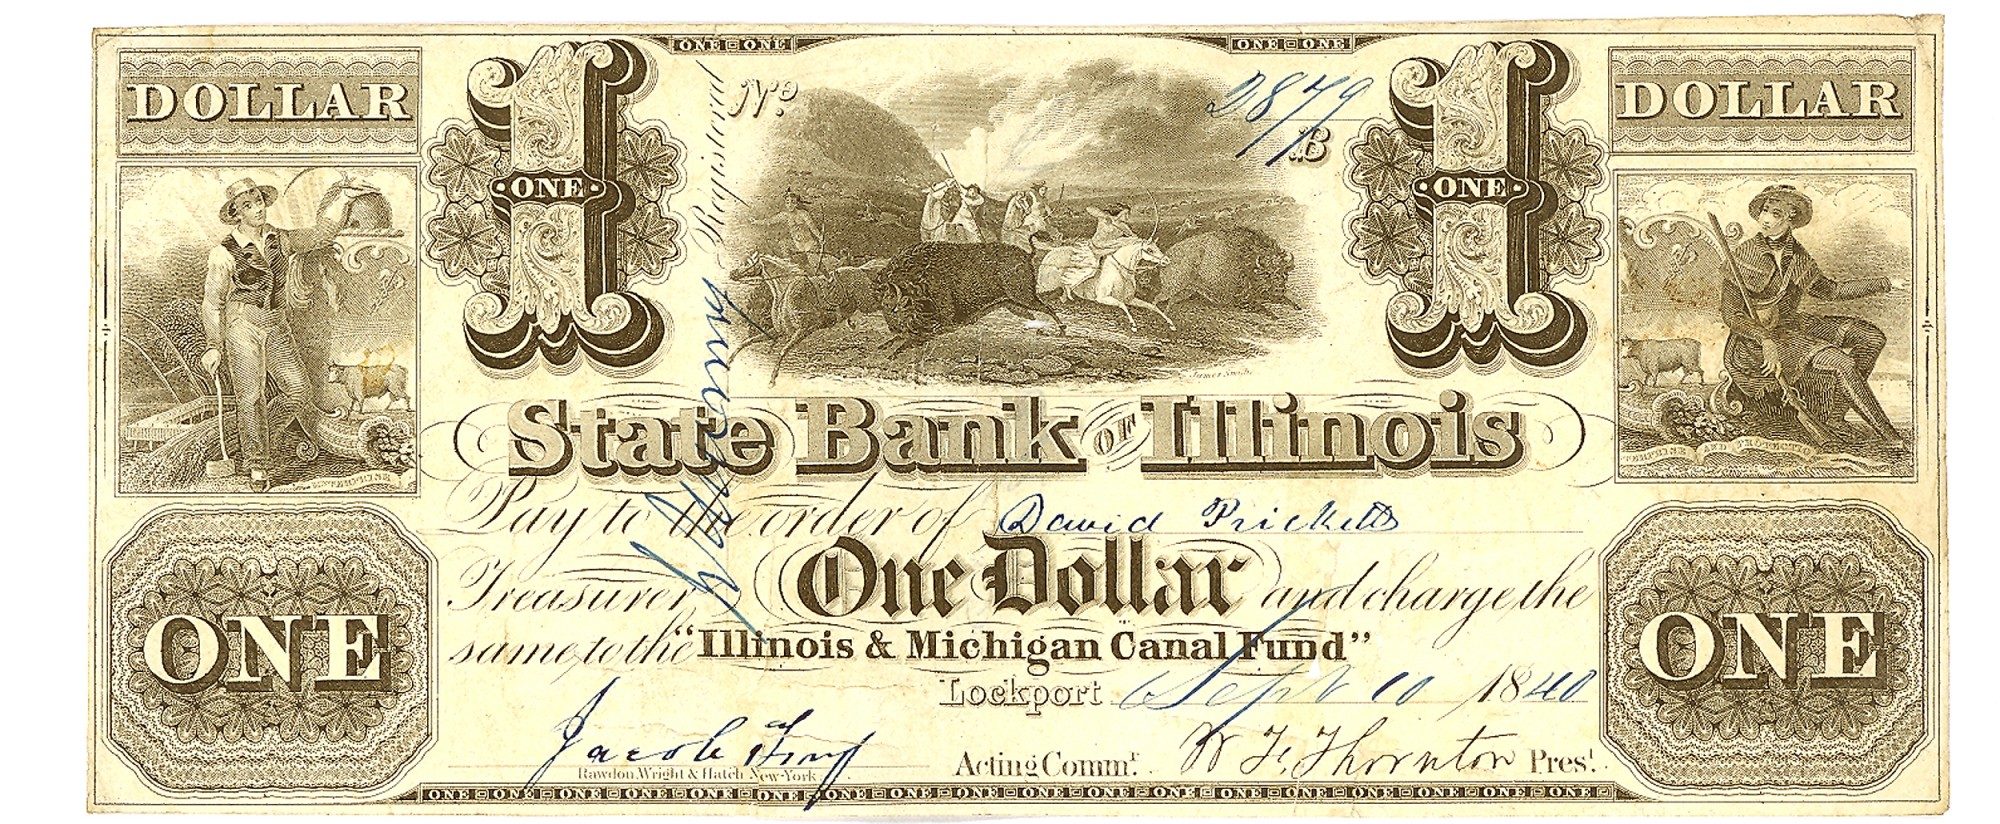 THE STATE BANK OF ILLINOIS LOCKPORT $1 NOTE